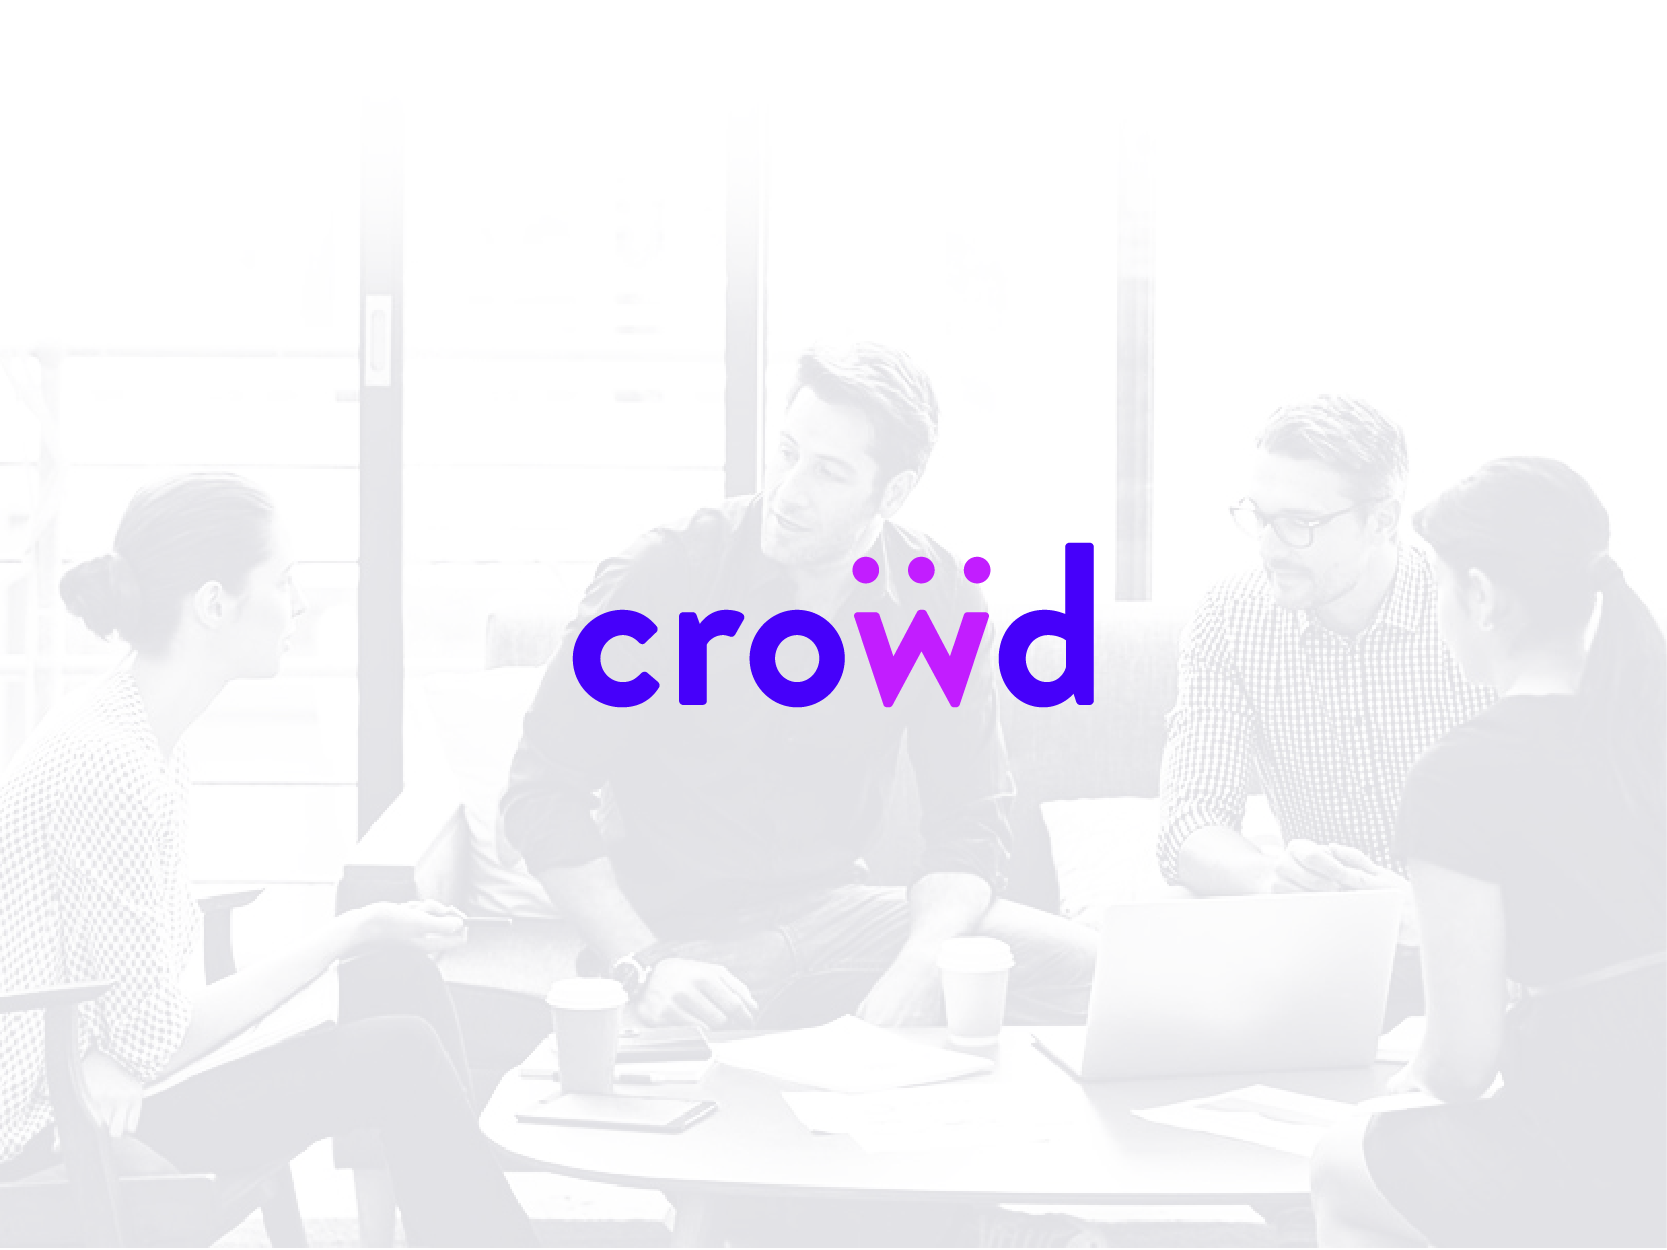 Crowd logo by Chiara Mensa